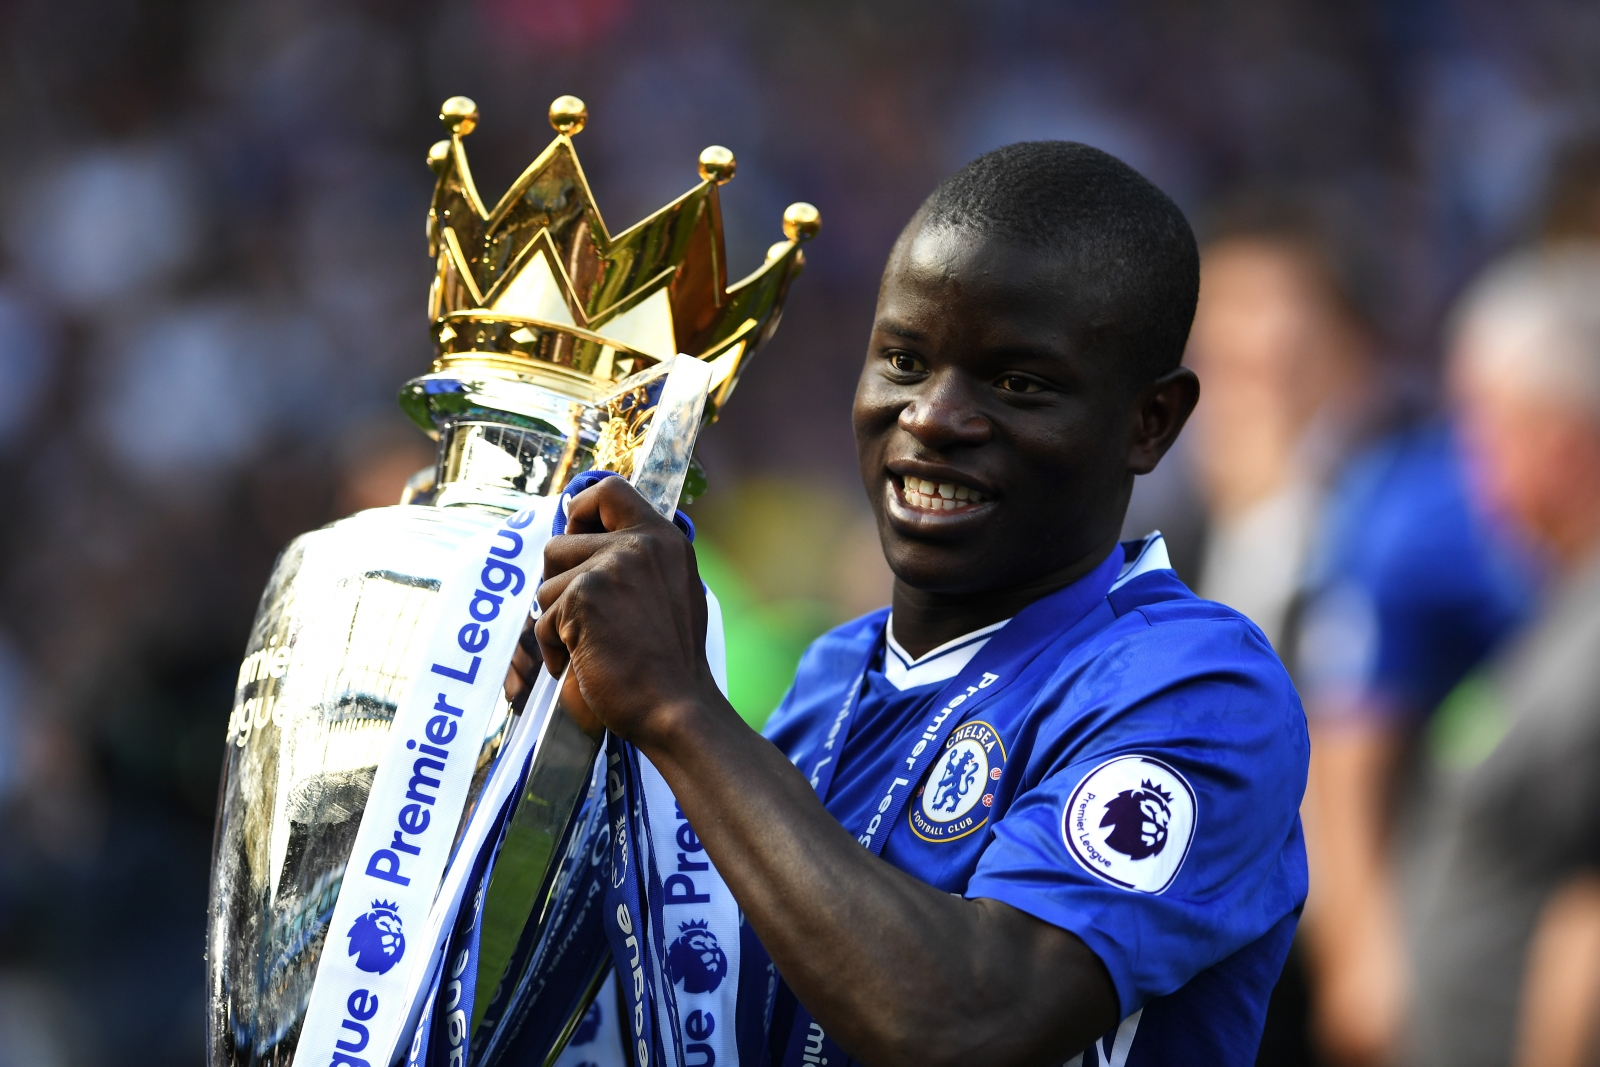 Chelsea midfielder N'Golo Kante explains Paris Saint-Germain transfer snub